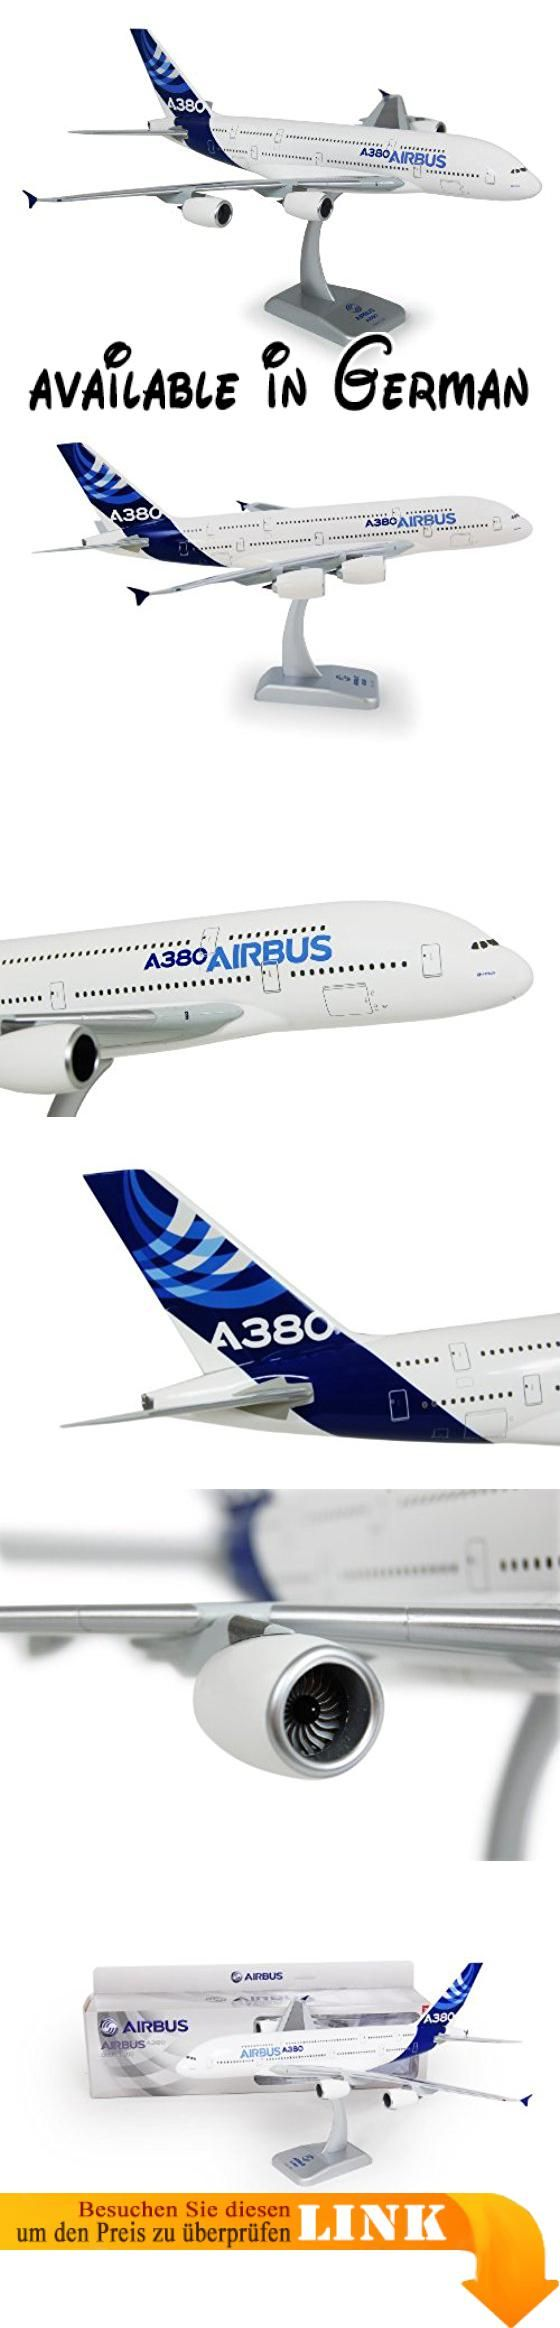 B004MY710M : Airbus A380-800 House Colour new livery 1:200. Airbus A380-800 House Colour im Maßstab 1:200. Premium-Qualität. Originalgetreue Airbus Lackierung. Inklusive Standfuß. Kunststoff Steckmodell (ohne Kleber)